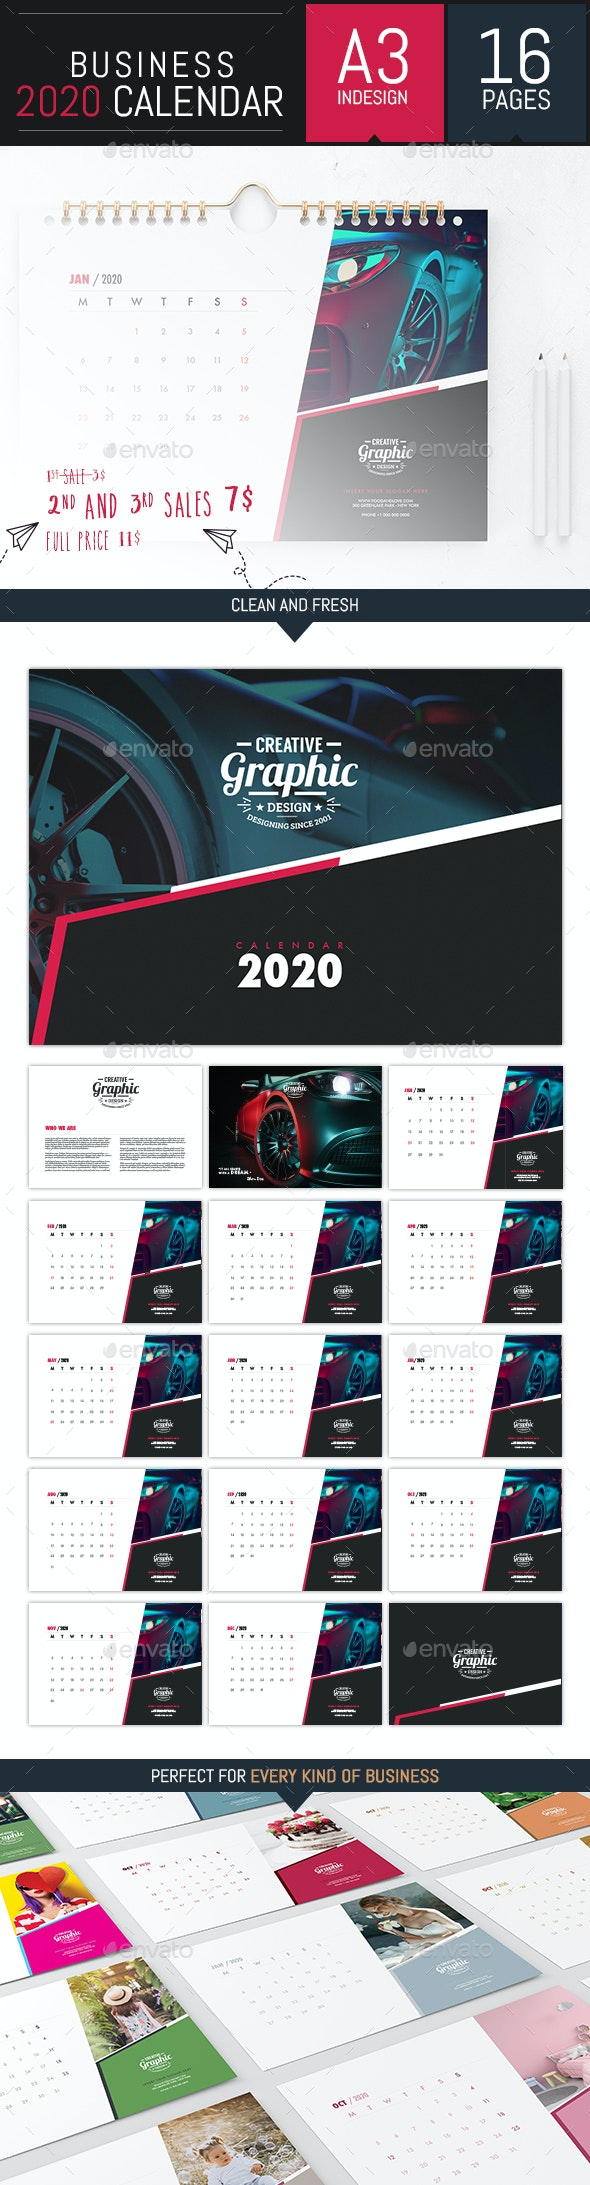 Business Calendar 2020 Template - InDesign - Calendars Stationery